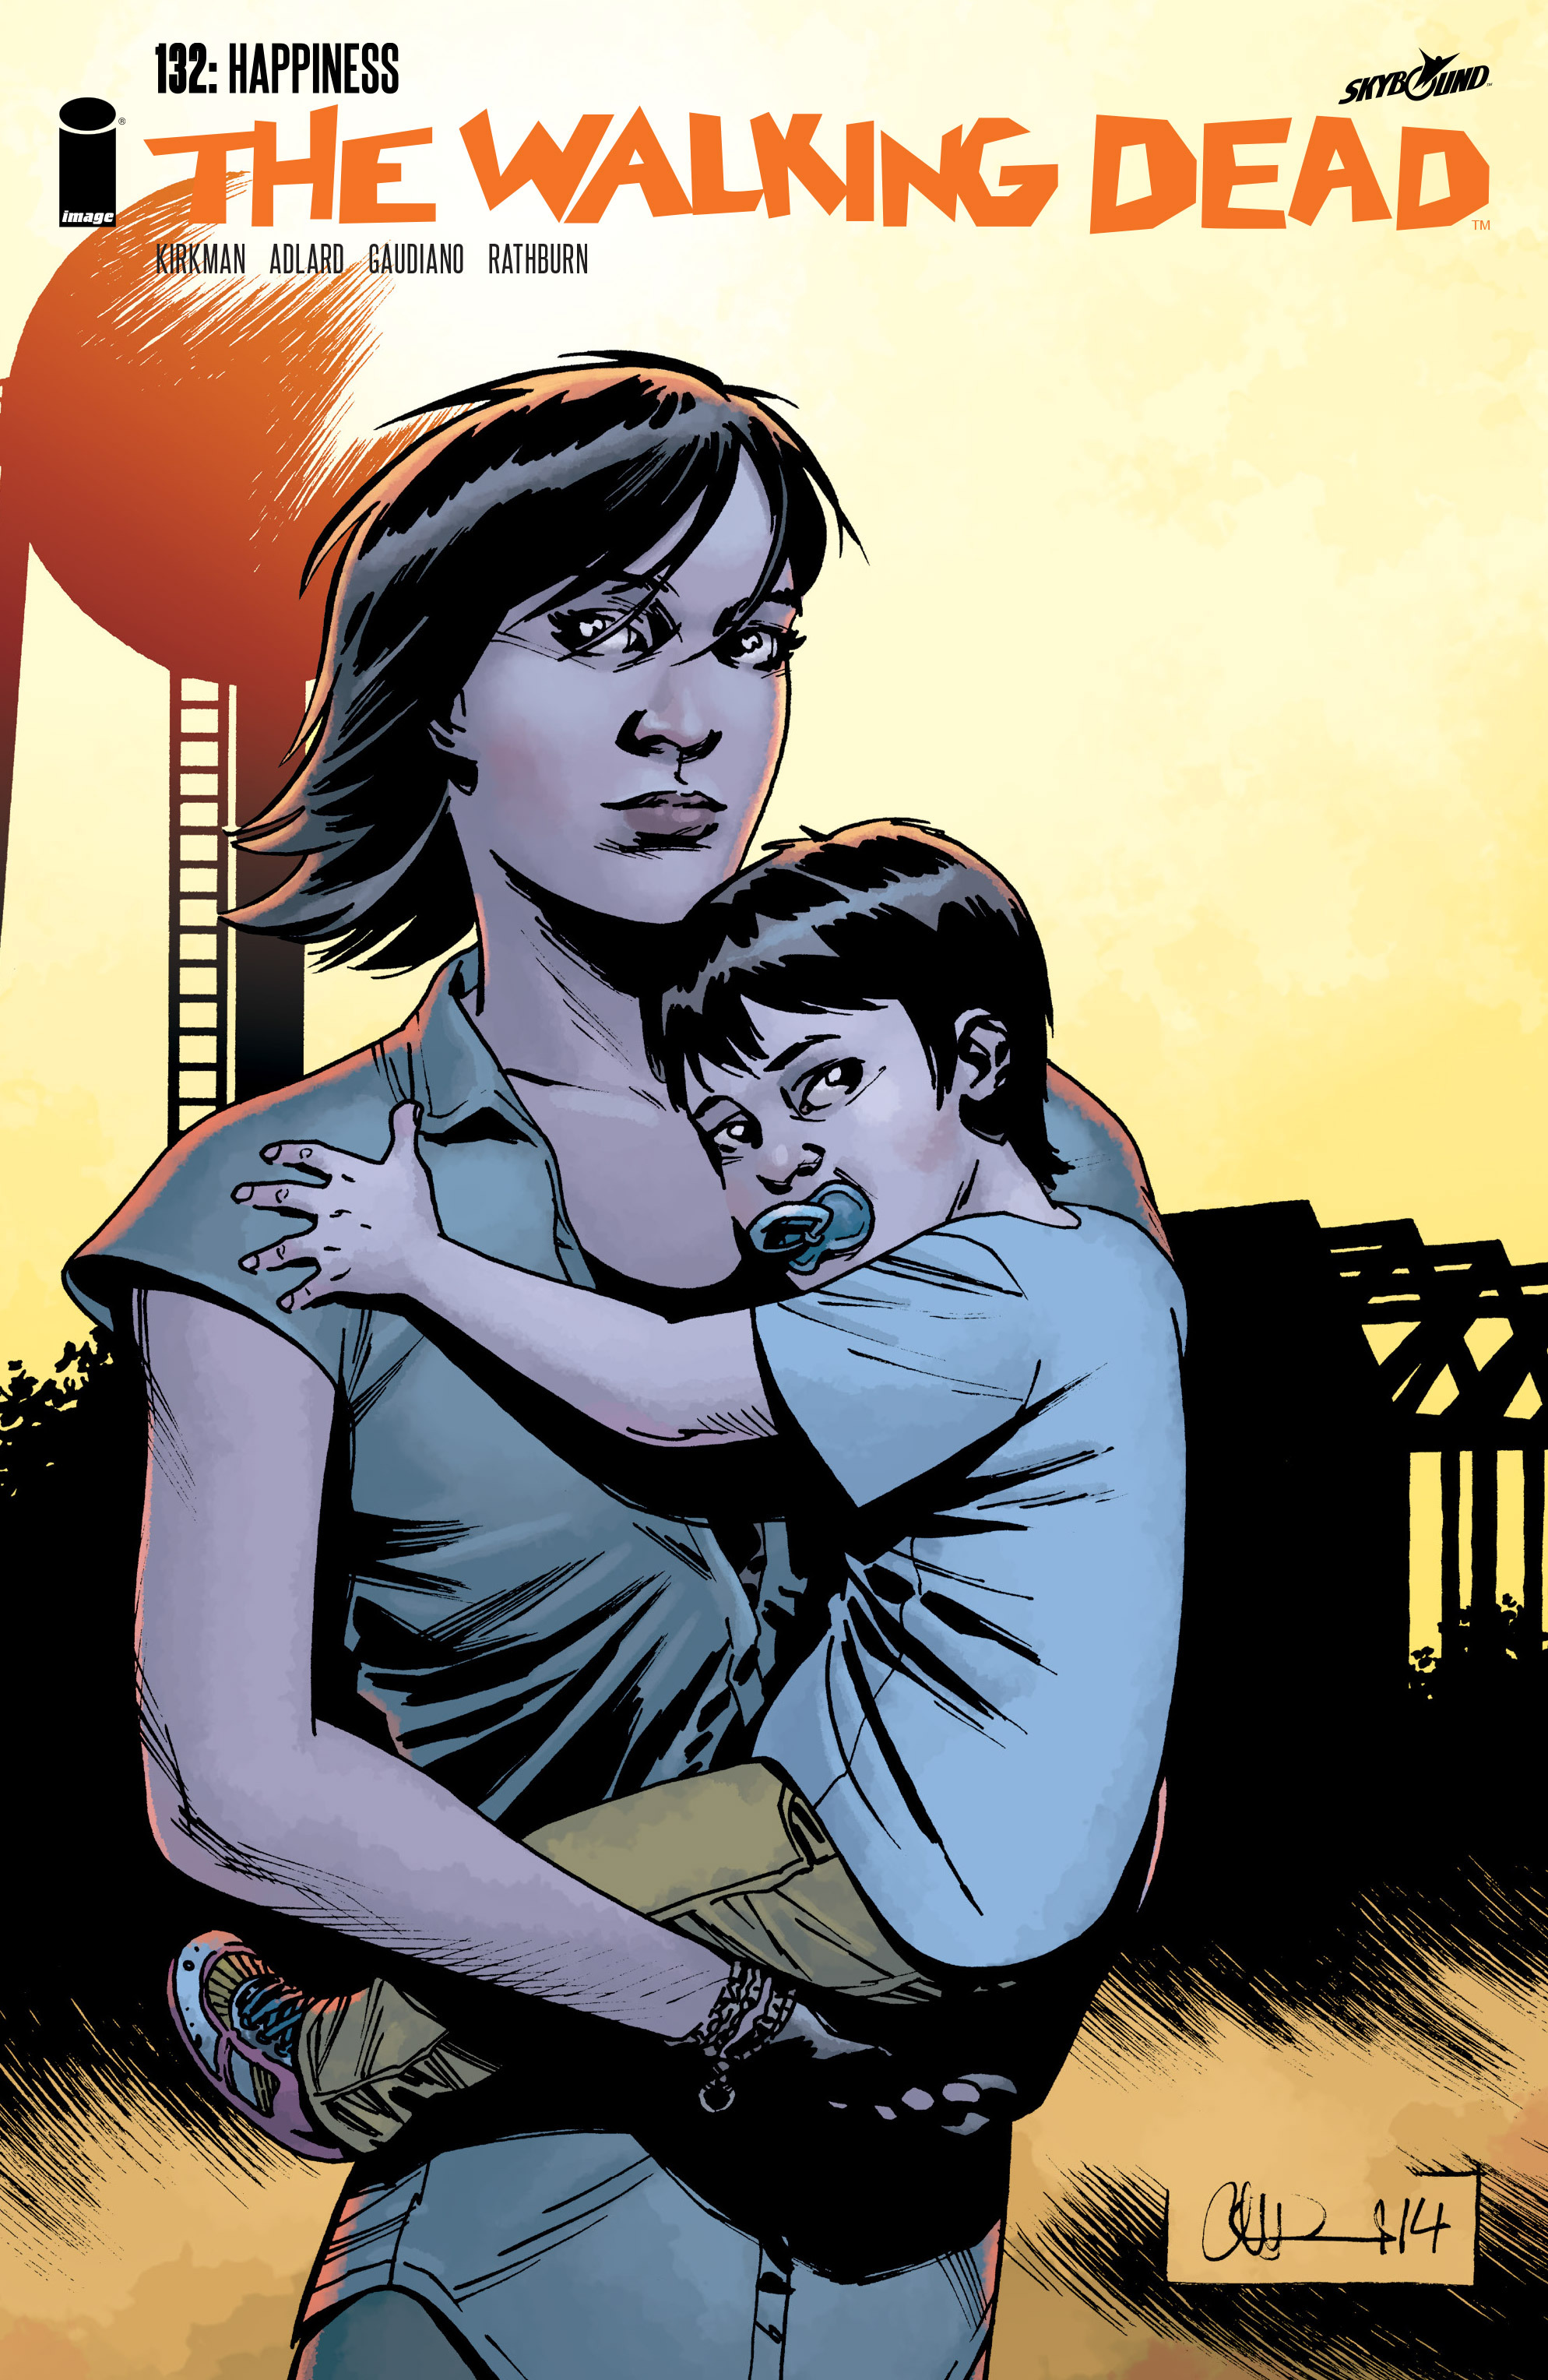 The Walking Dead Issue #132 Page 1